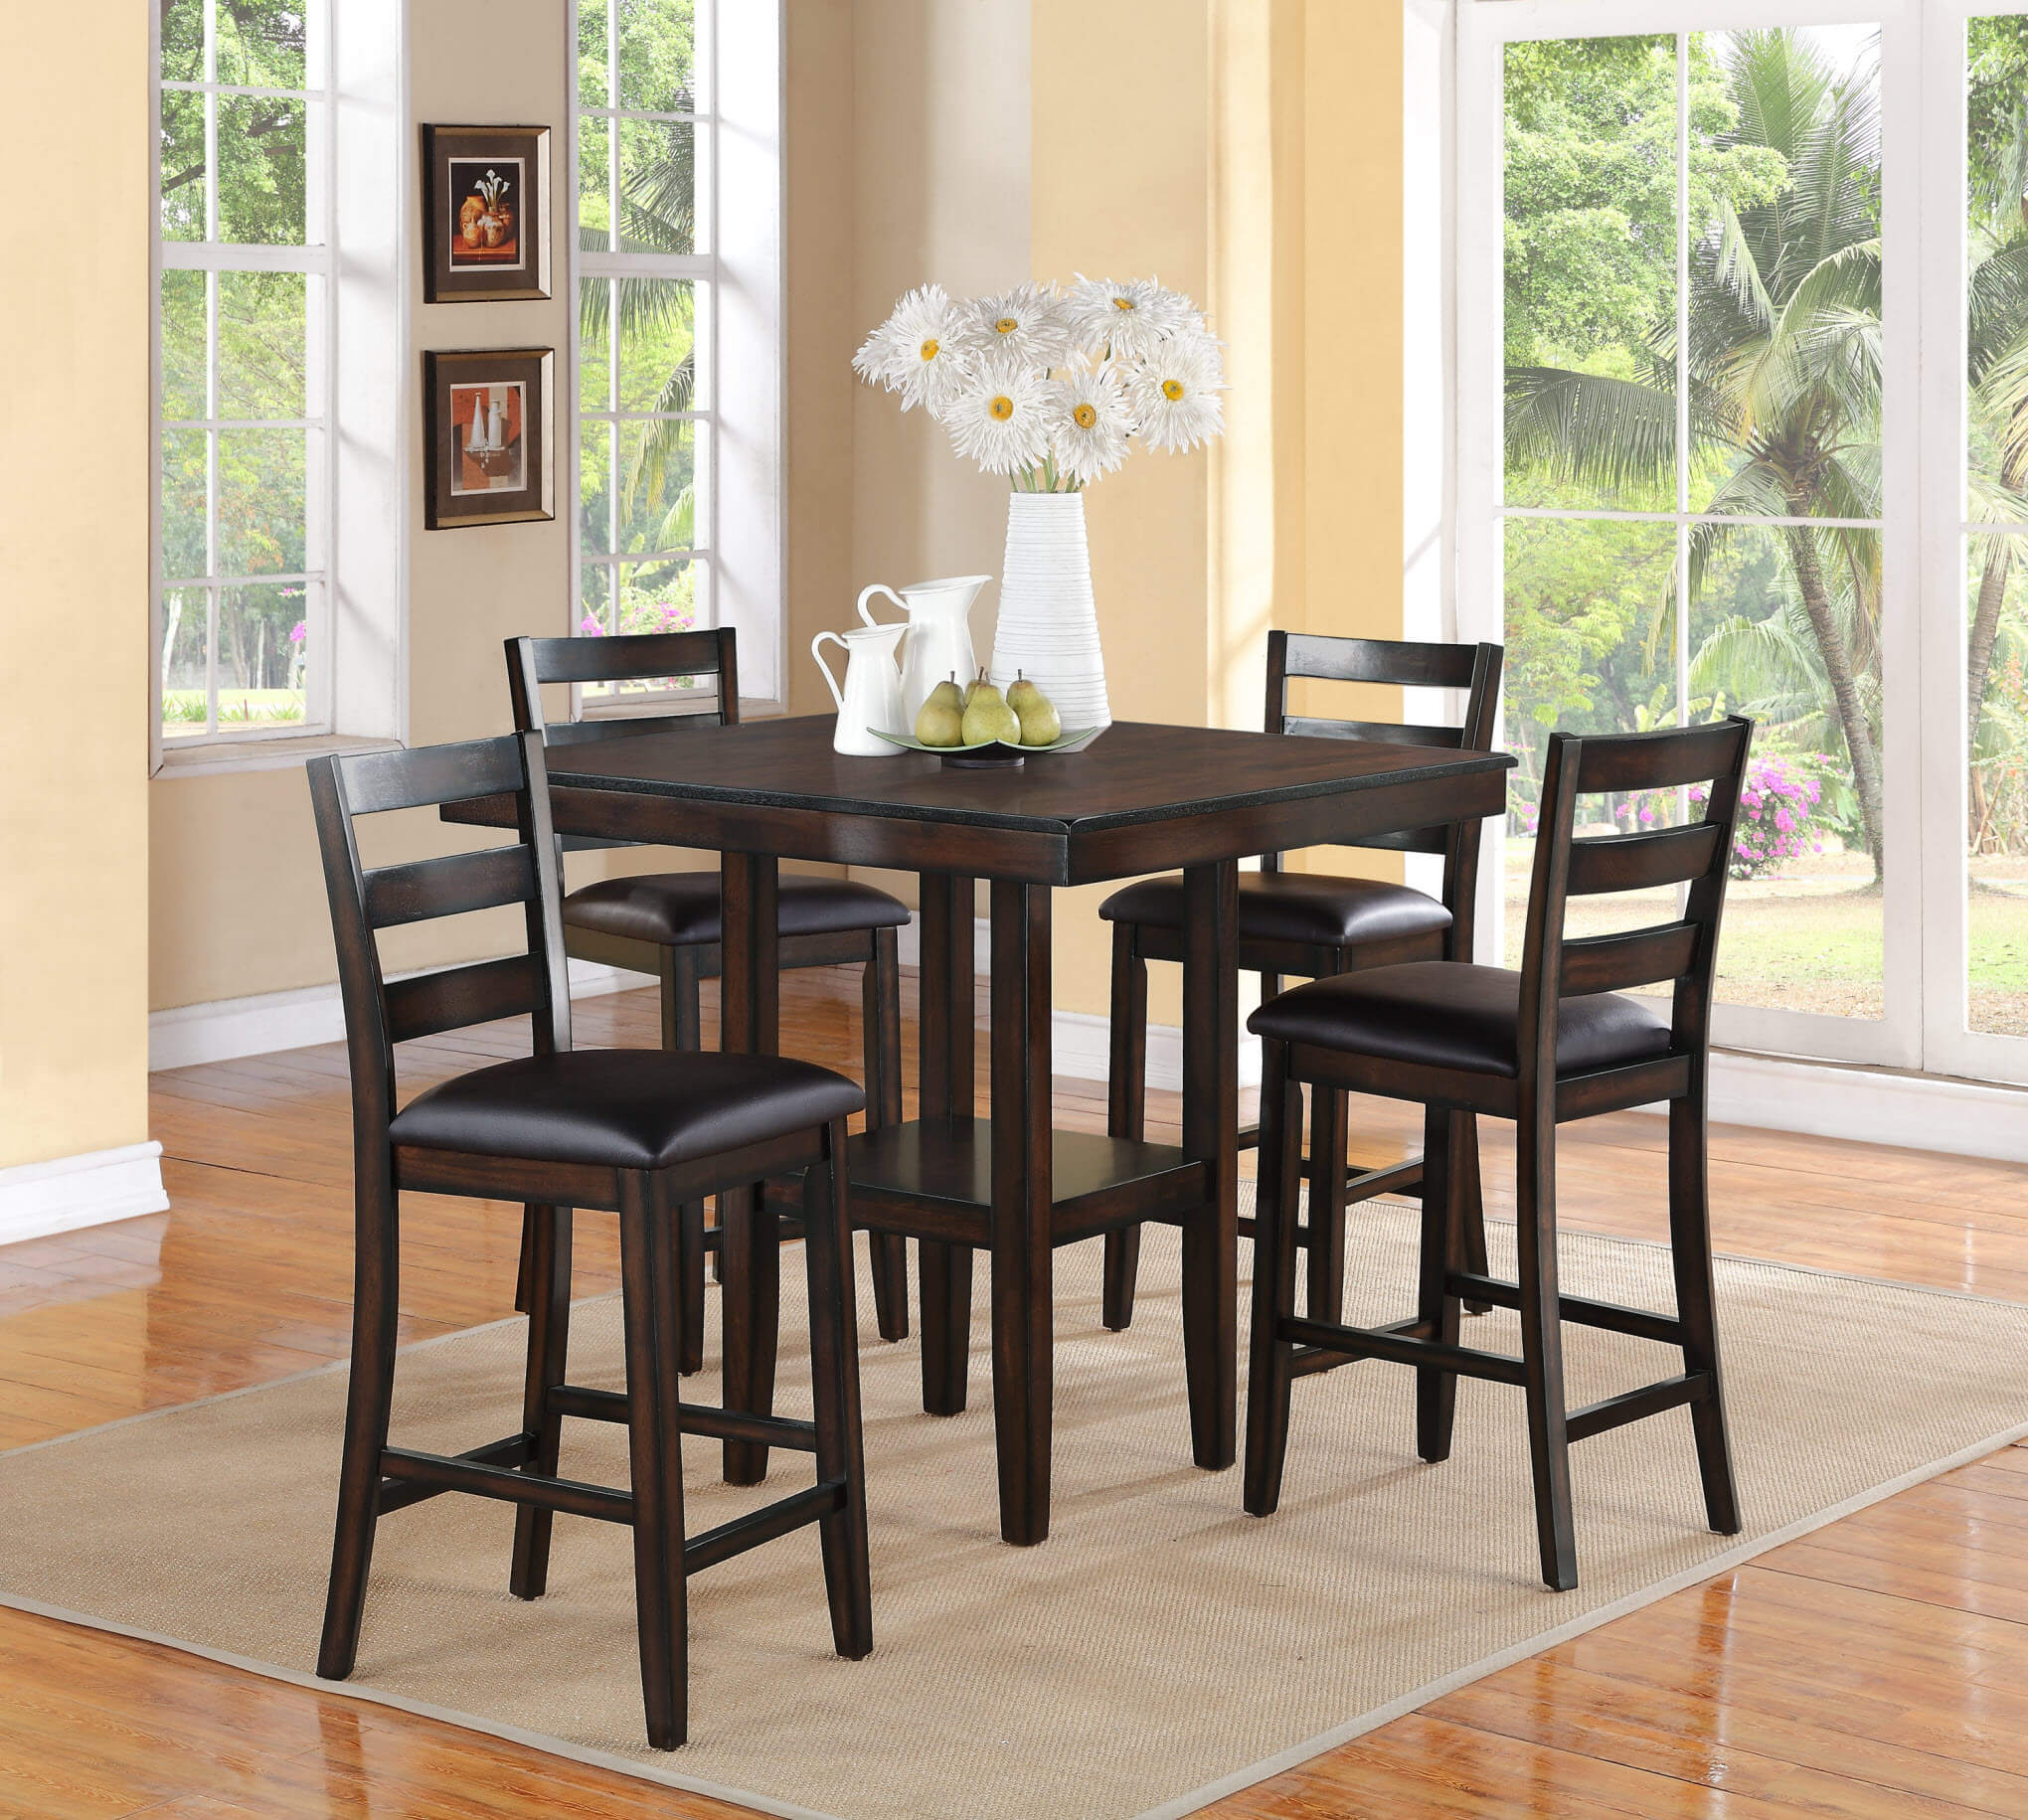 Tahoe Counter Height Set | Dining Room Furniture Sets